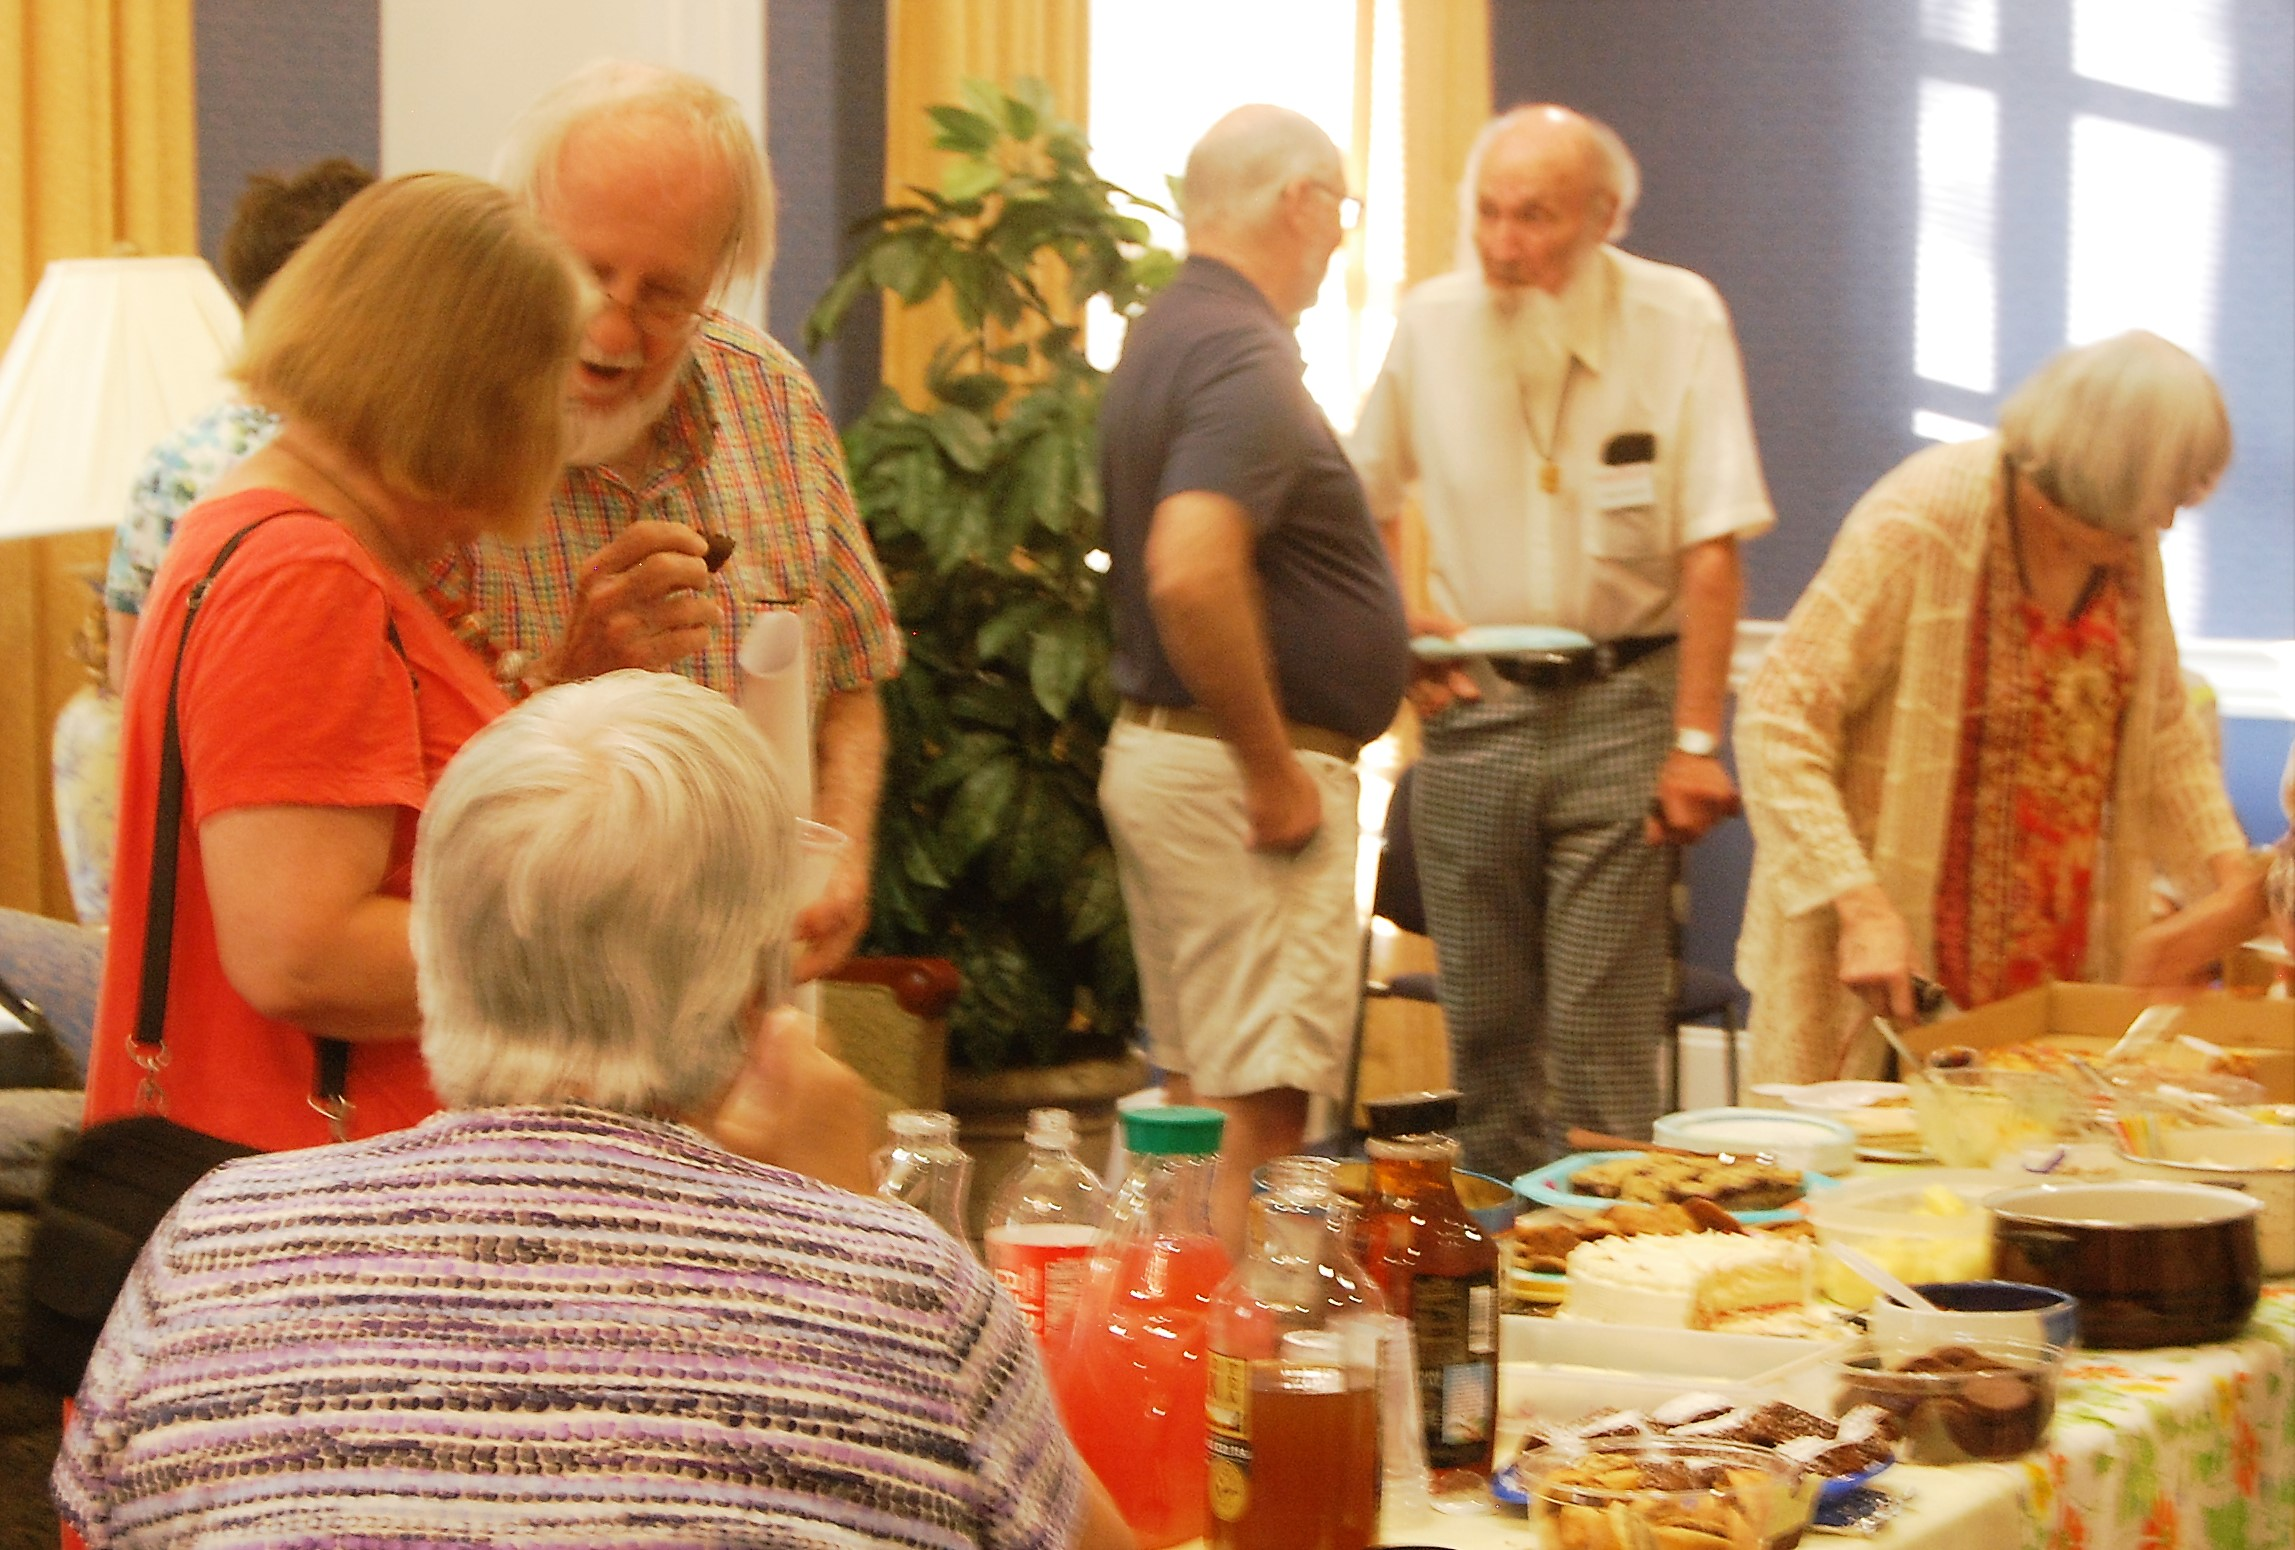 Members and guests mingle over snacks at the annual fall open house.